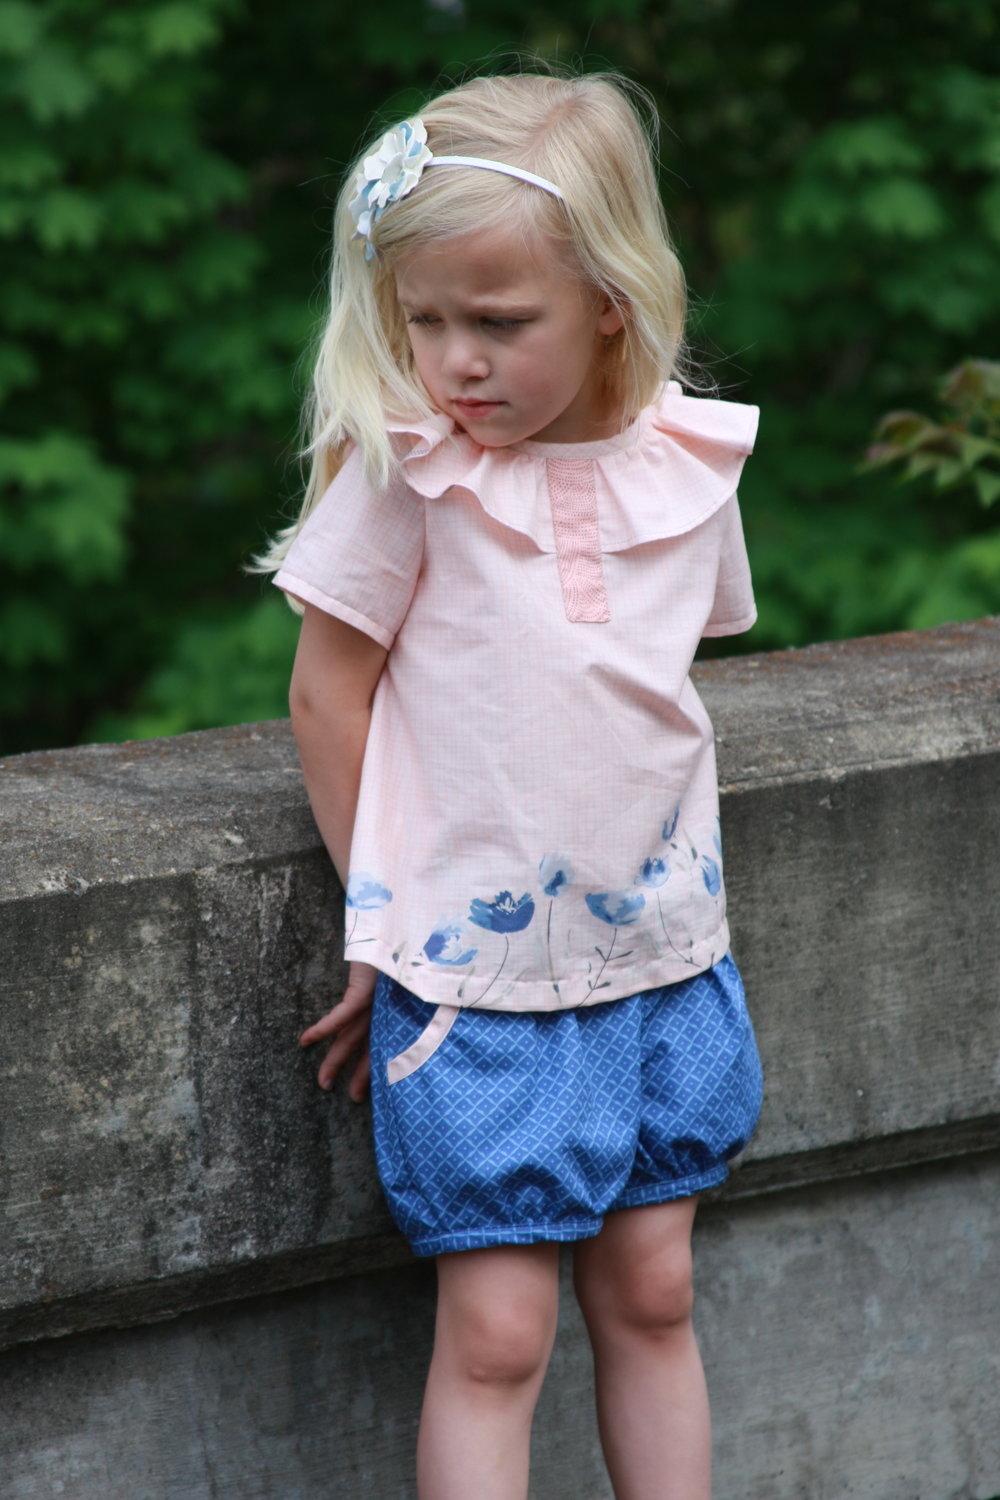 Shorts are Berry Bubble Shorts by Mummykins and Me (one of 10 patterns I picked for summer sewing for kids).